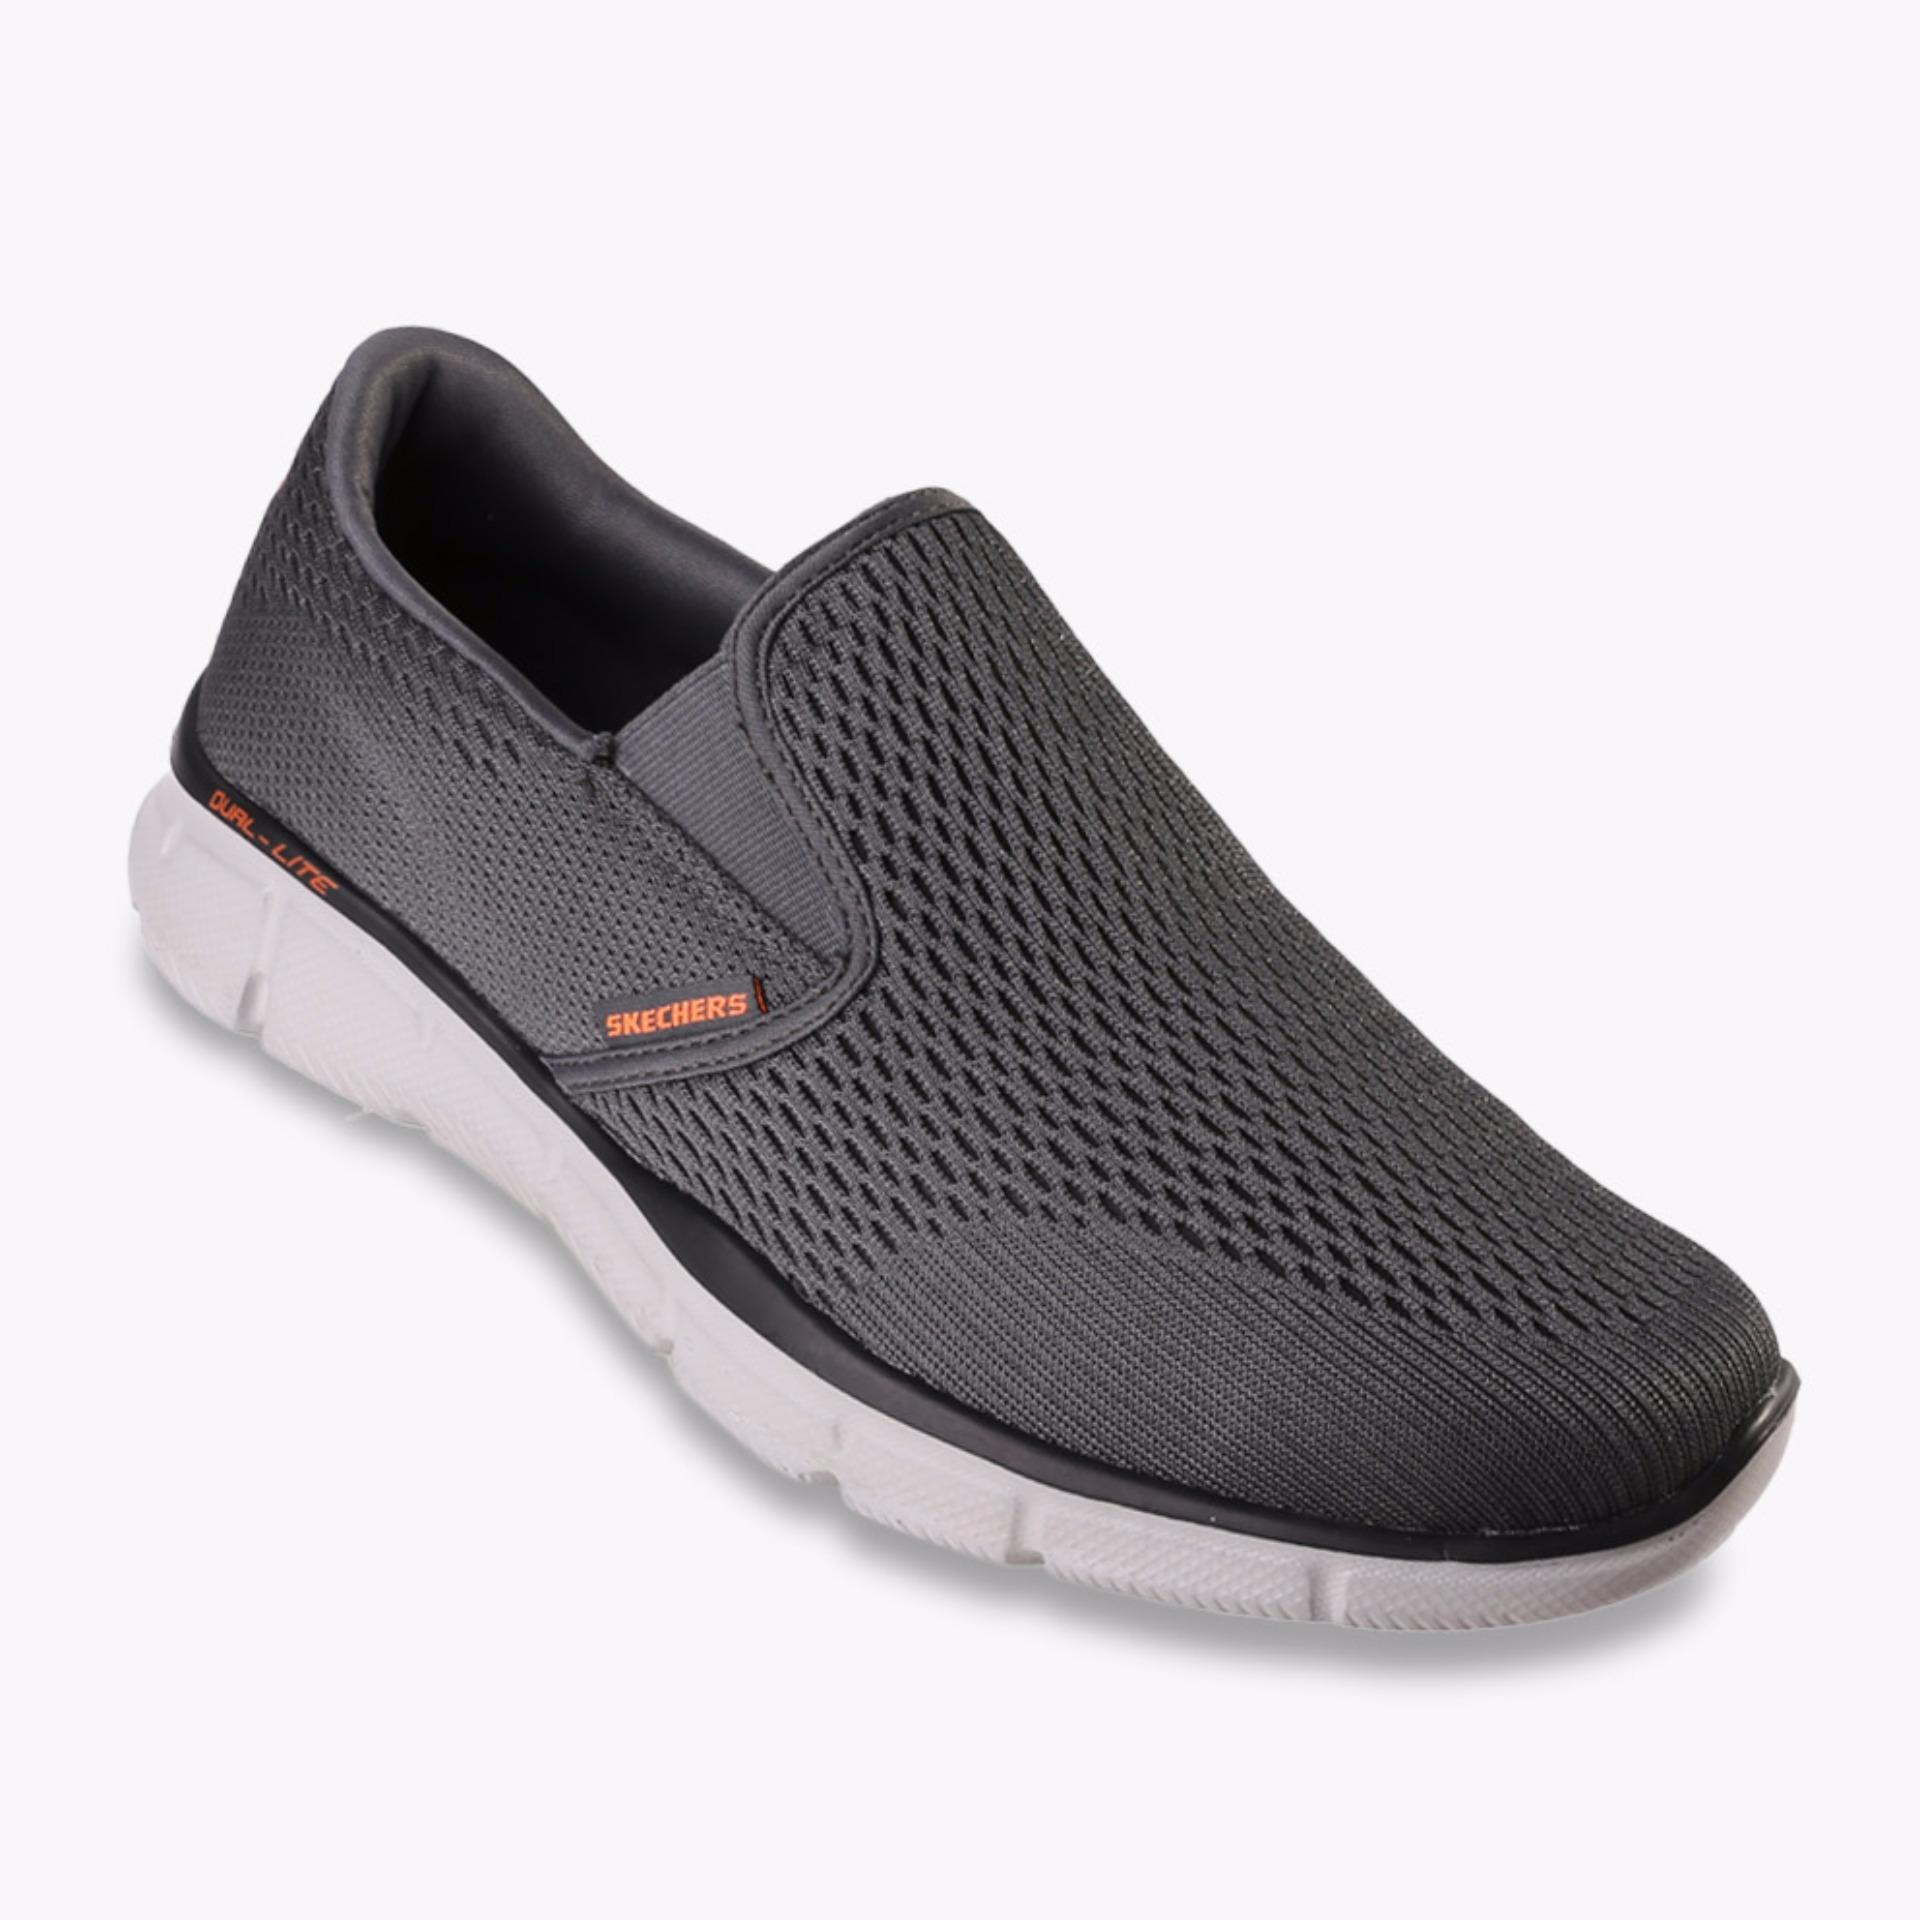 Toko Skechers Equalizer Double Play Men S Sneakers Abu Abu Indonesia